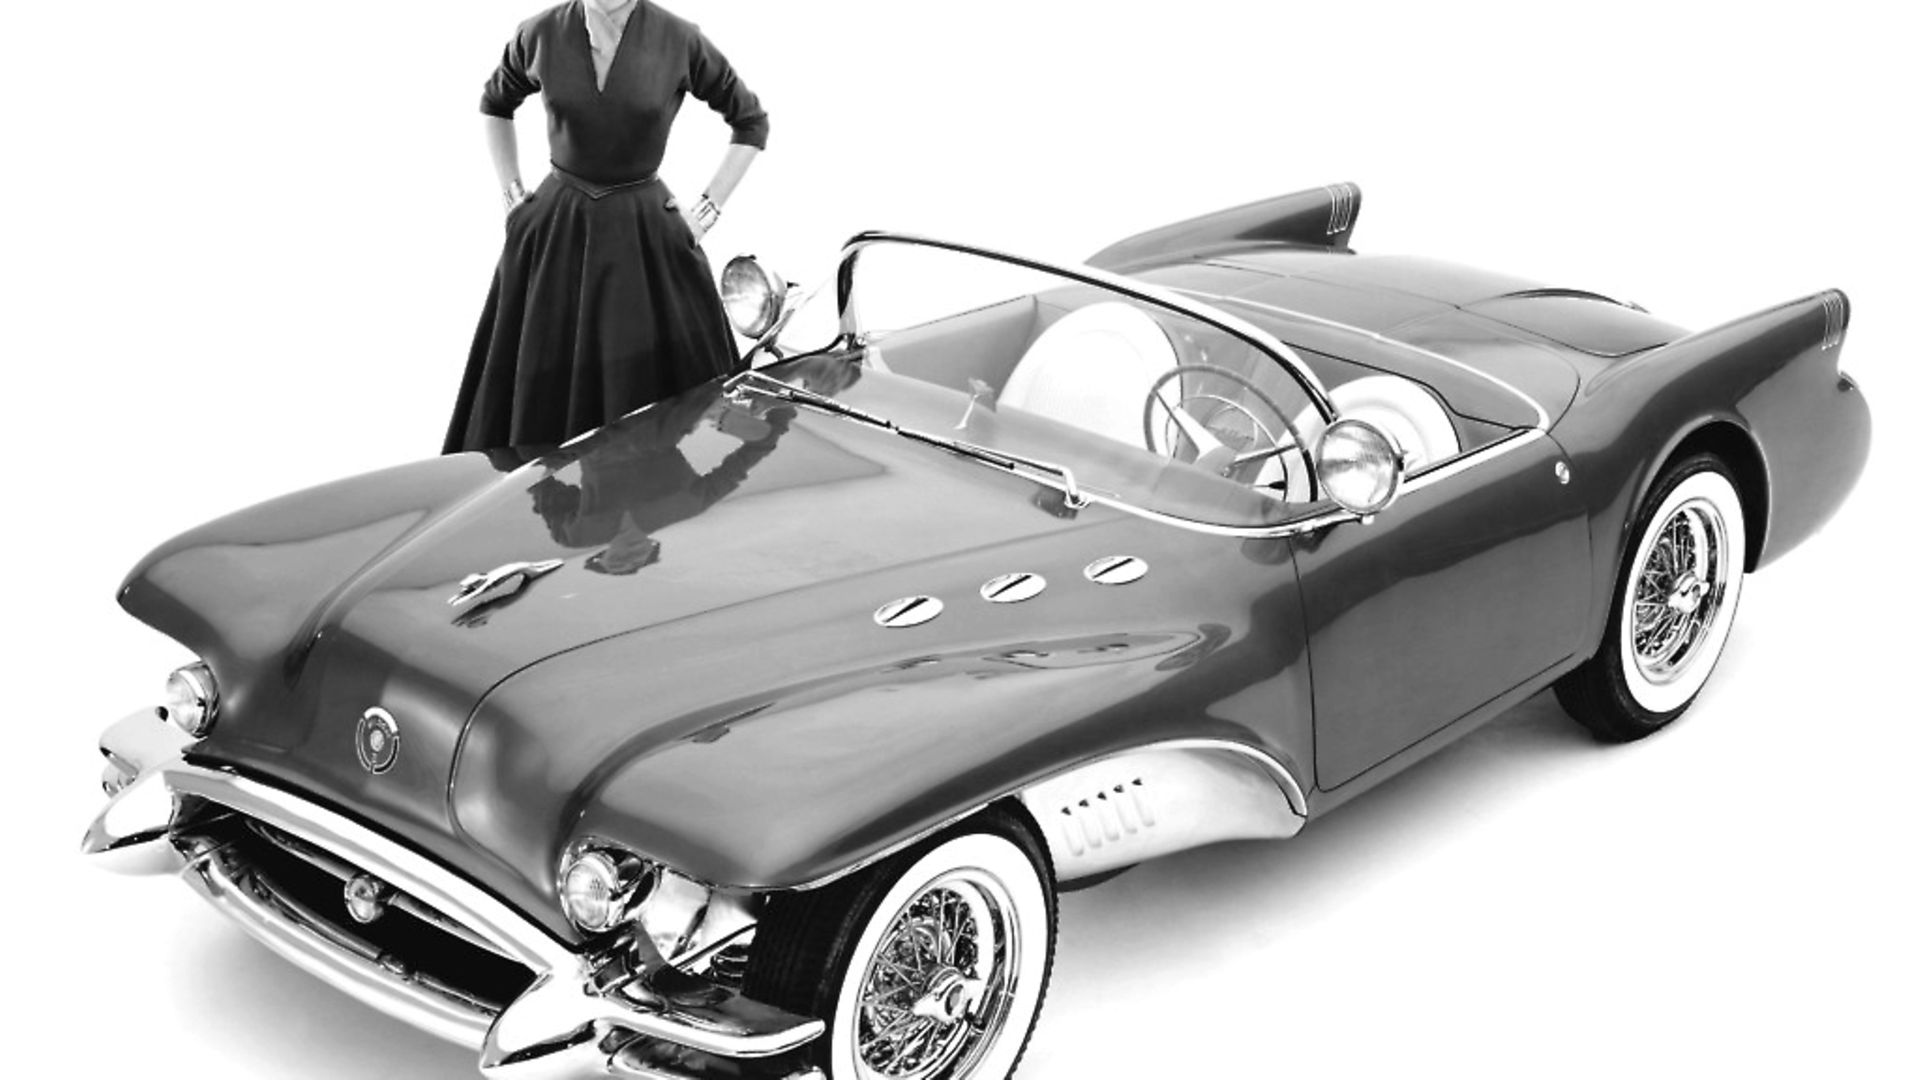 A model with the Buick Wildcat II concept car designed by Harley Earl, Detroit, Michigan, 1954. Photo by Underwood Archives/Getty Images - Credit: Getty Images